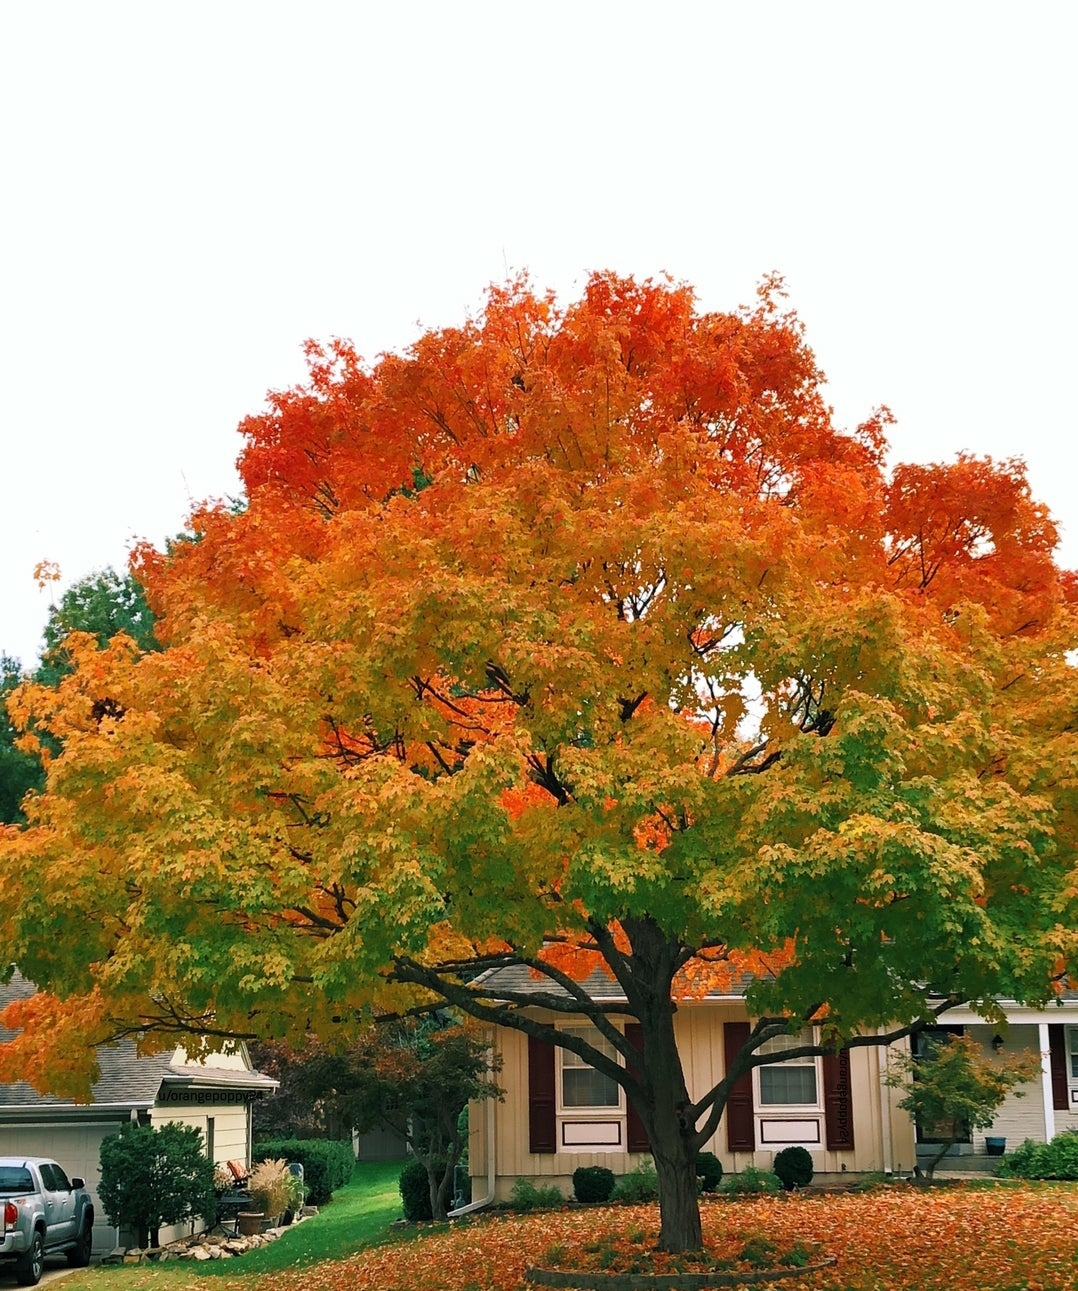 The tree has the perfect autumn gradient